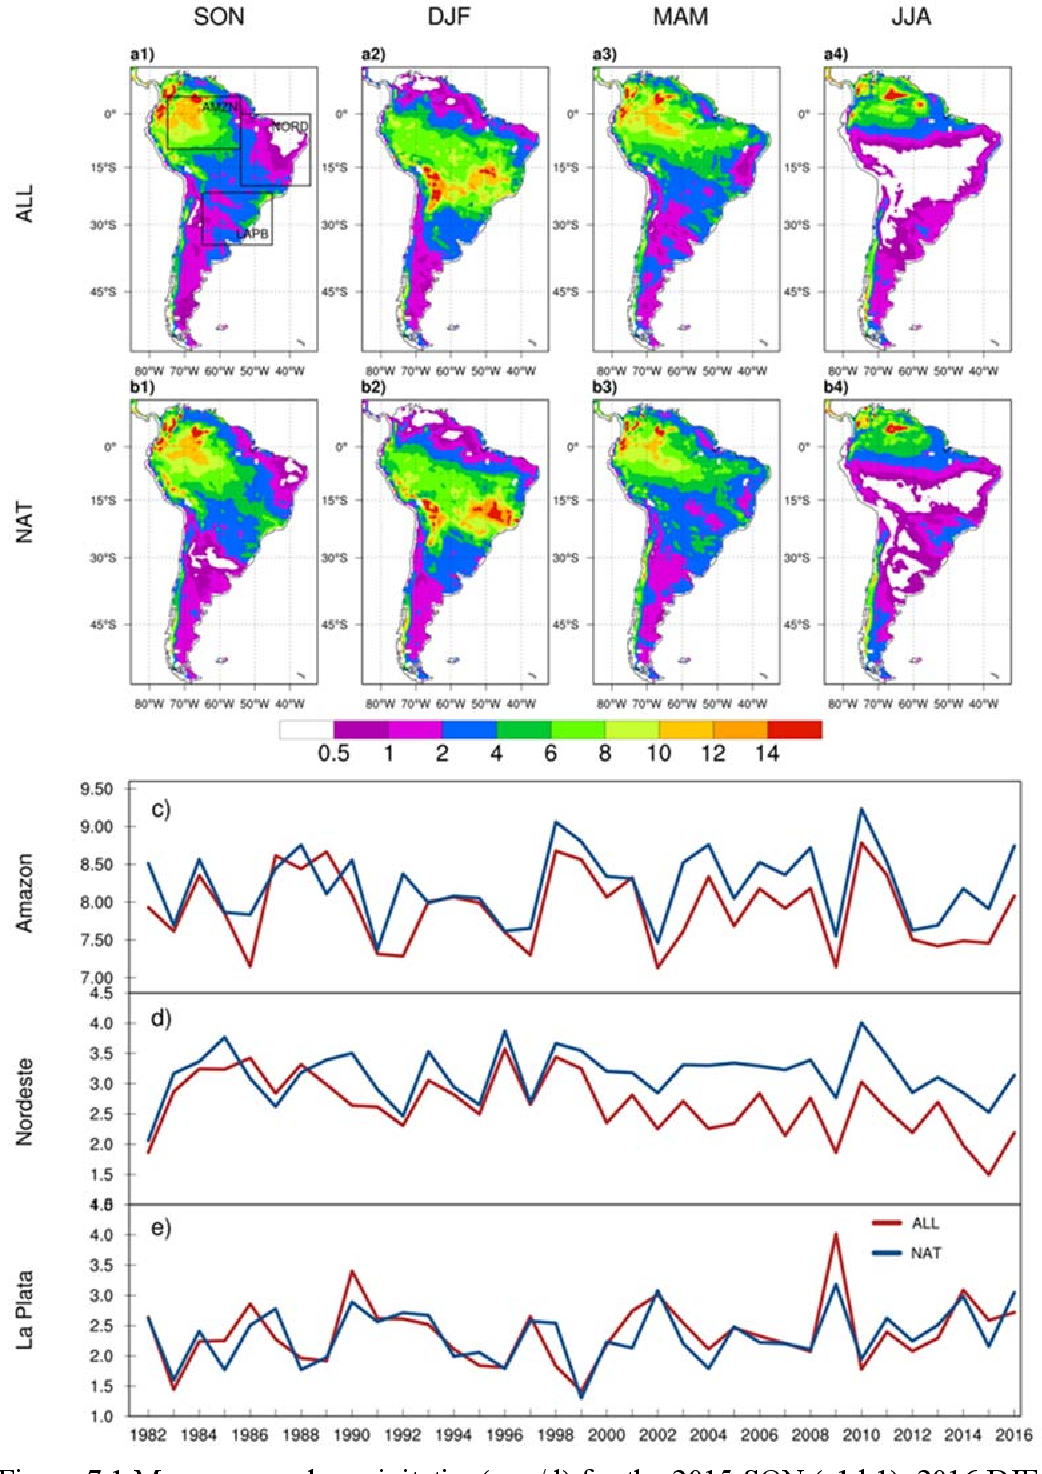 Figure 7.1 Mean seasonal precipitation(mm/d) for the 2015 SON (a1,b1), 2016 DJF (a2,b2), 2016 MAM (a3,b3), and 2016 JJA (a4,b4) seasons in the ALL (a1,a2,a3,a4) and NAT(a1,a2,a3,a4) simulation sets. The time series of SON mean precipitation (mm/d) in ALL (red) and NAT (blue) simulations are presented for the Amazon (c), Nordeste (d), and La Plata (e) regions. Seasonal cycle of the 2016 event starts from the SON season in the previous year.